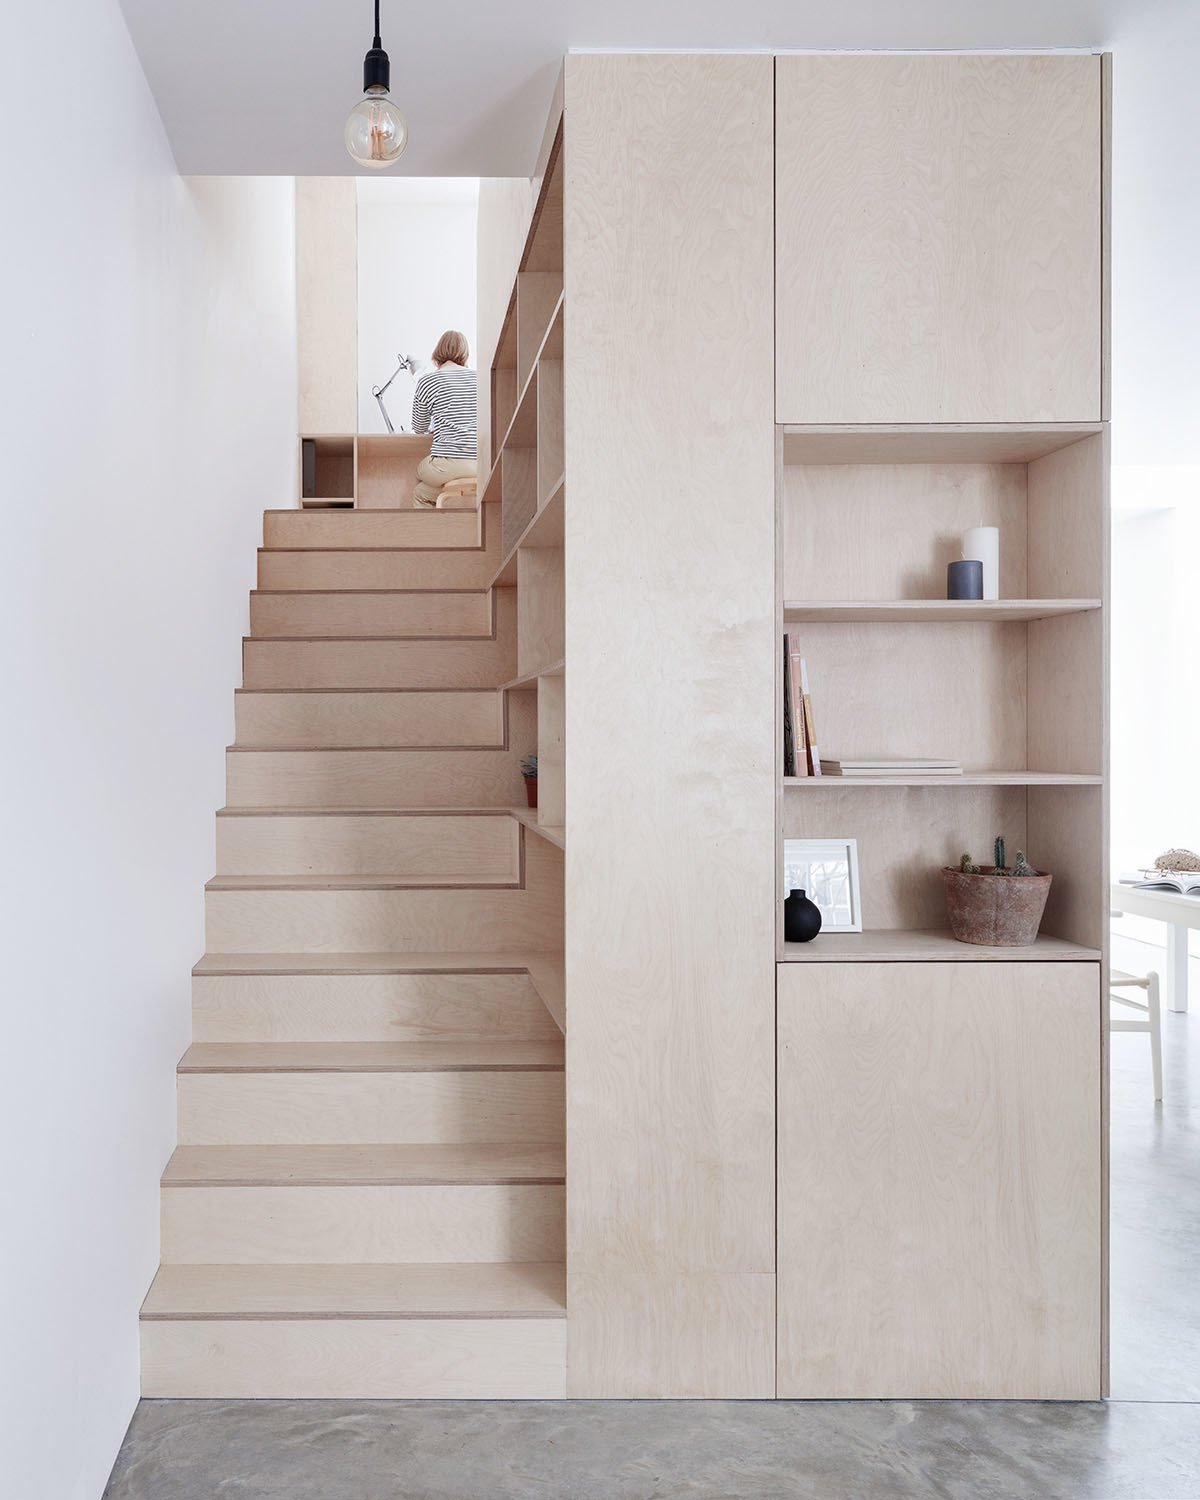 Photo caption: Clean lines in plywood and ample hidden storage give this home a sleek contemporary look. Tagged: Storage Room, Cabinet Storage Type, and Shelves Storage Type.  Photo 3 of 10 in 10 Clever Ways to Sneak Storage Into Your Renovation